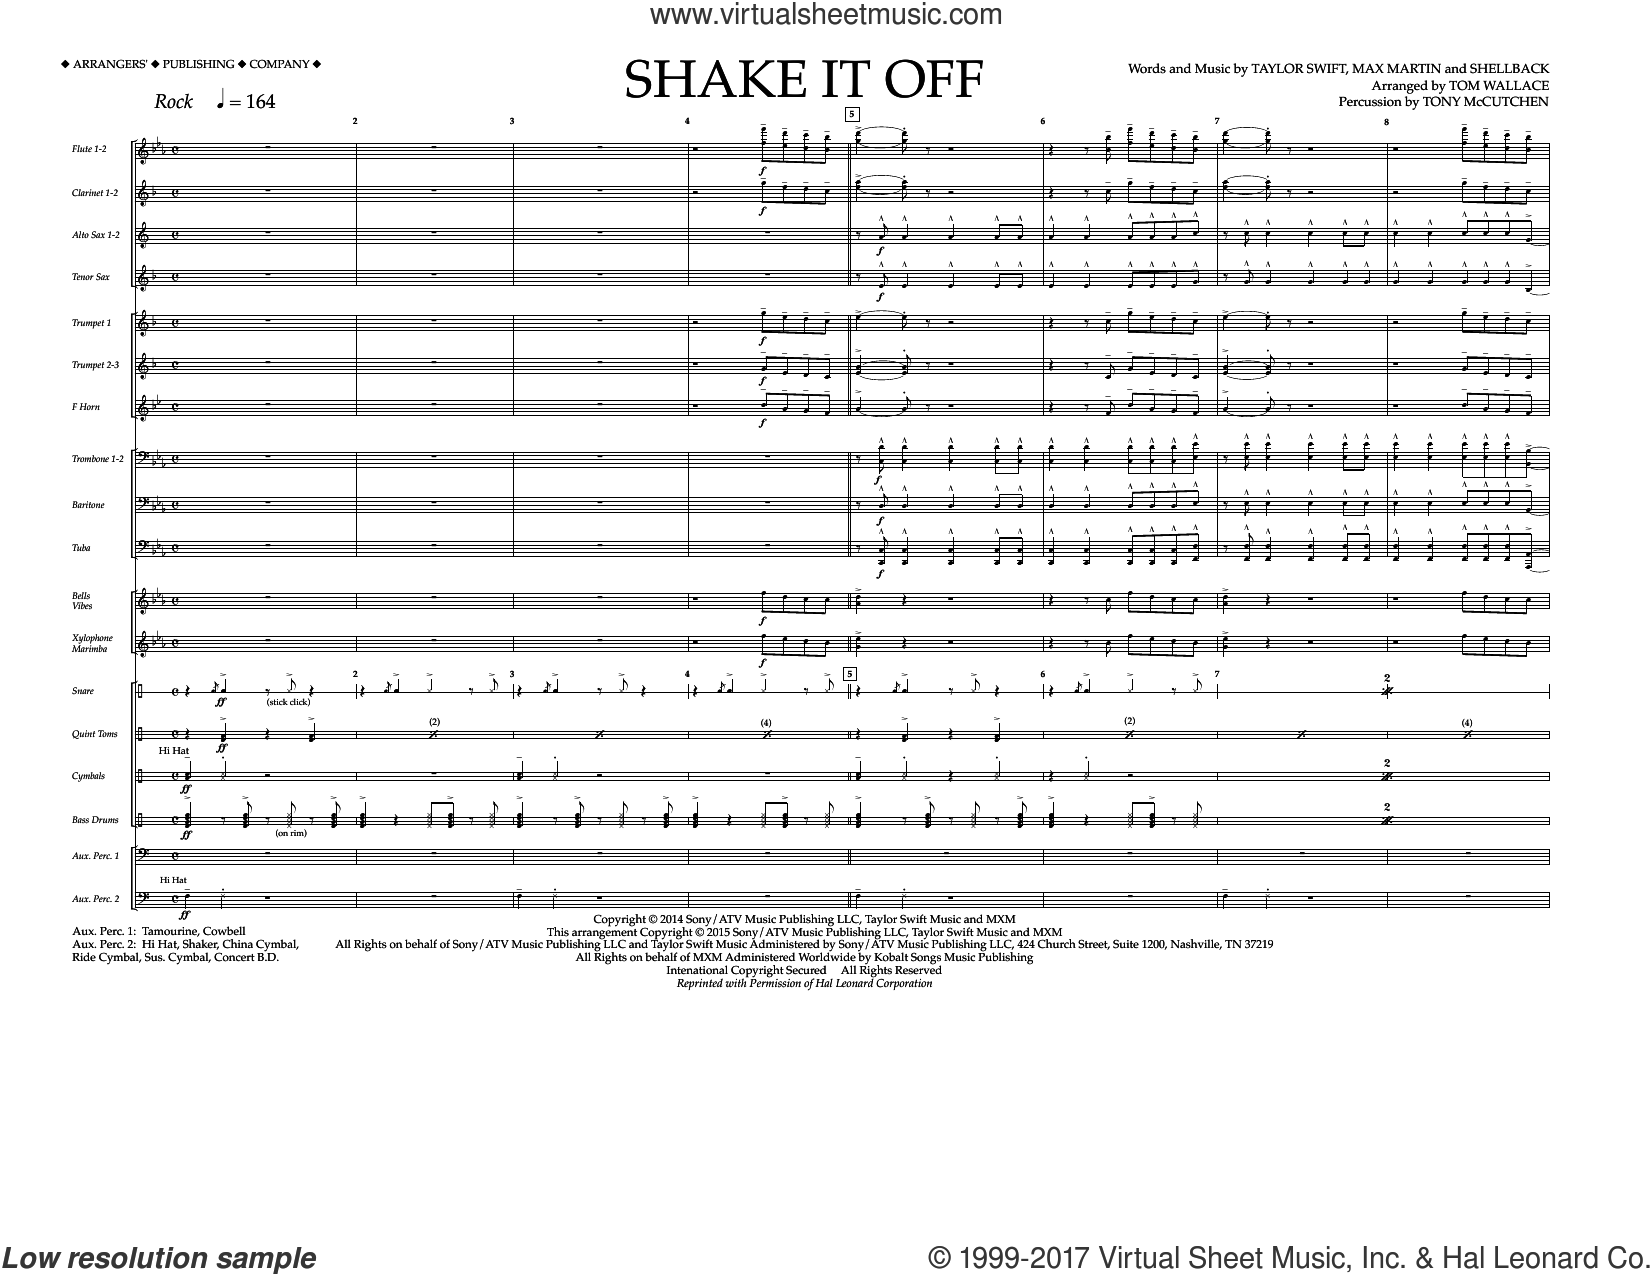 Shake It Off (COMPLETE) sheet music for marching band by Taylor Swift, Johan Schuster, Max Martin, Shellback and Tom Wallace, intermediate skill level